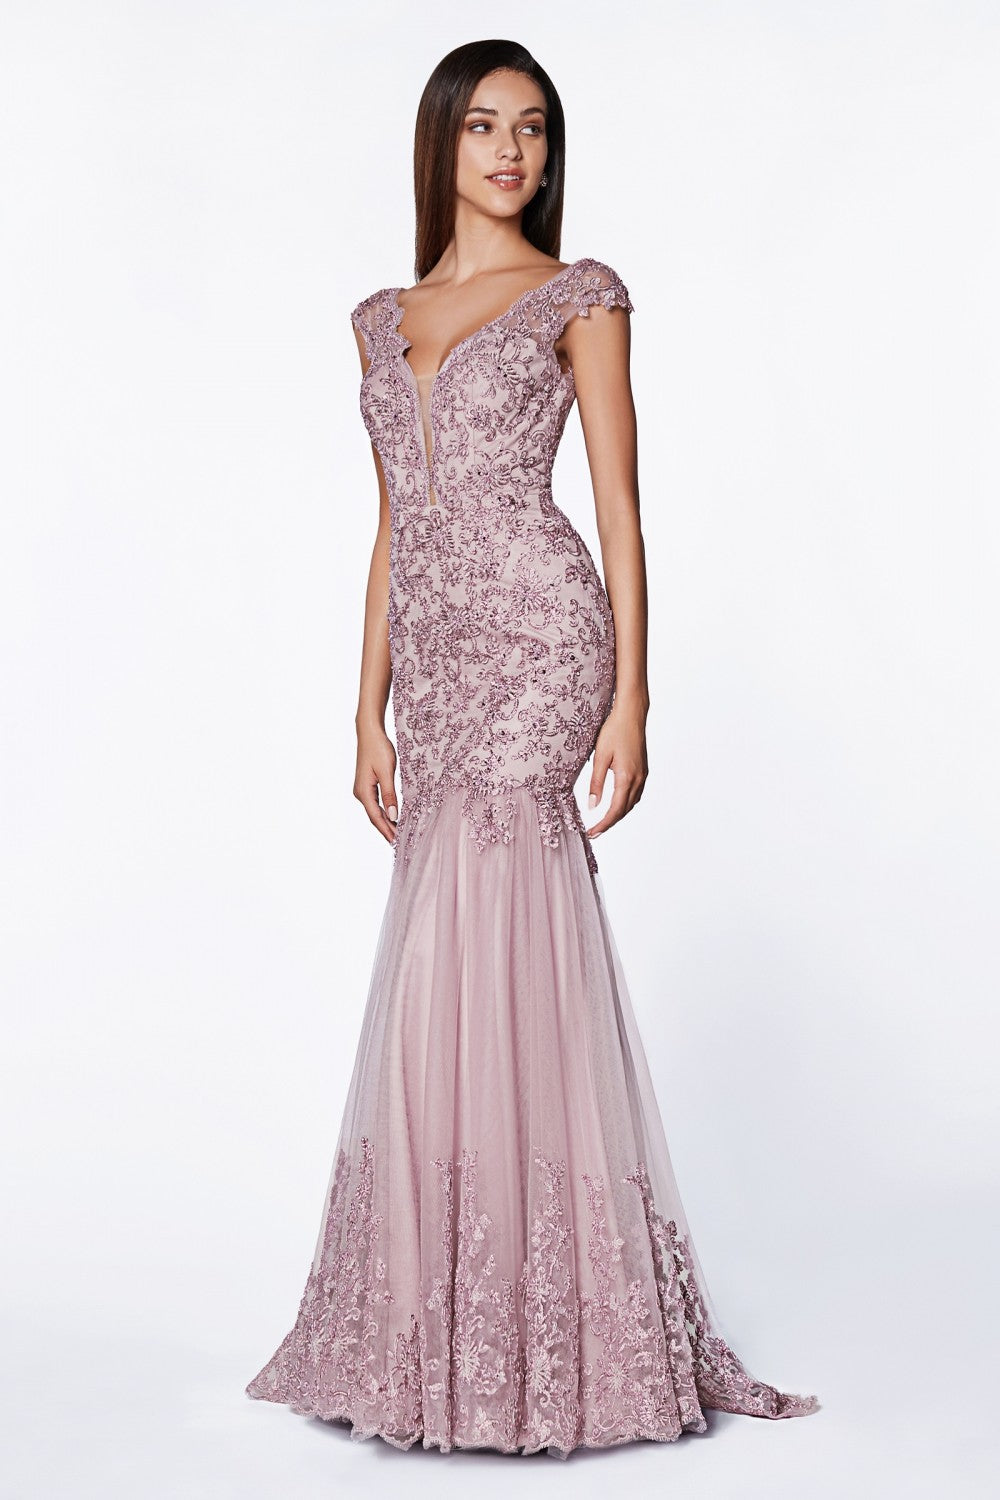 Mermiad Lace Fitted Gown With Cap Sleeves And Open Scoop Back